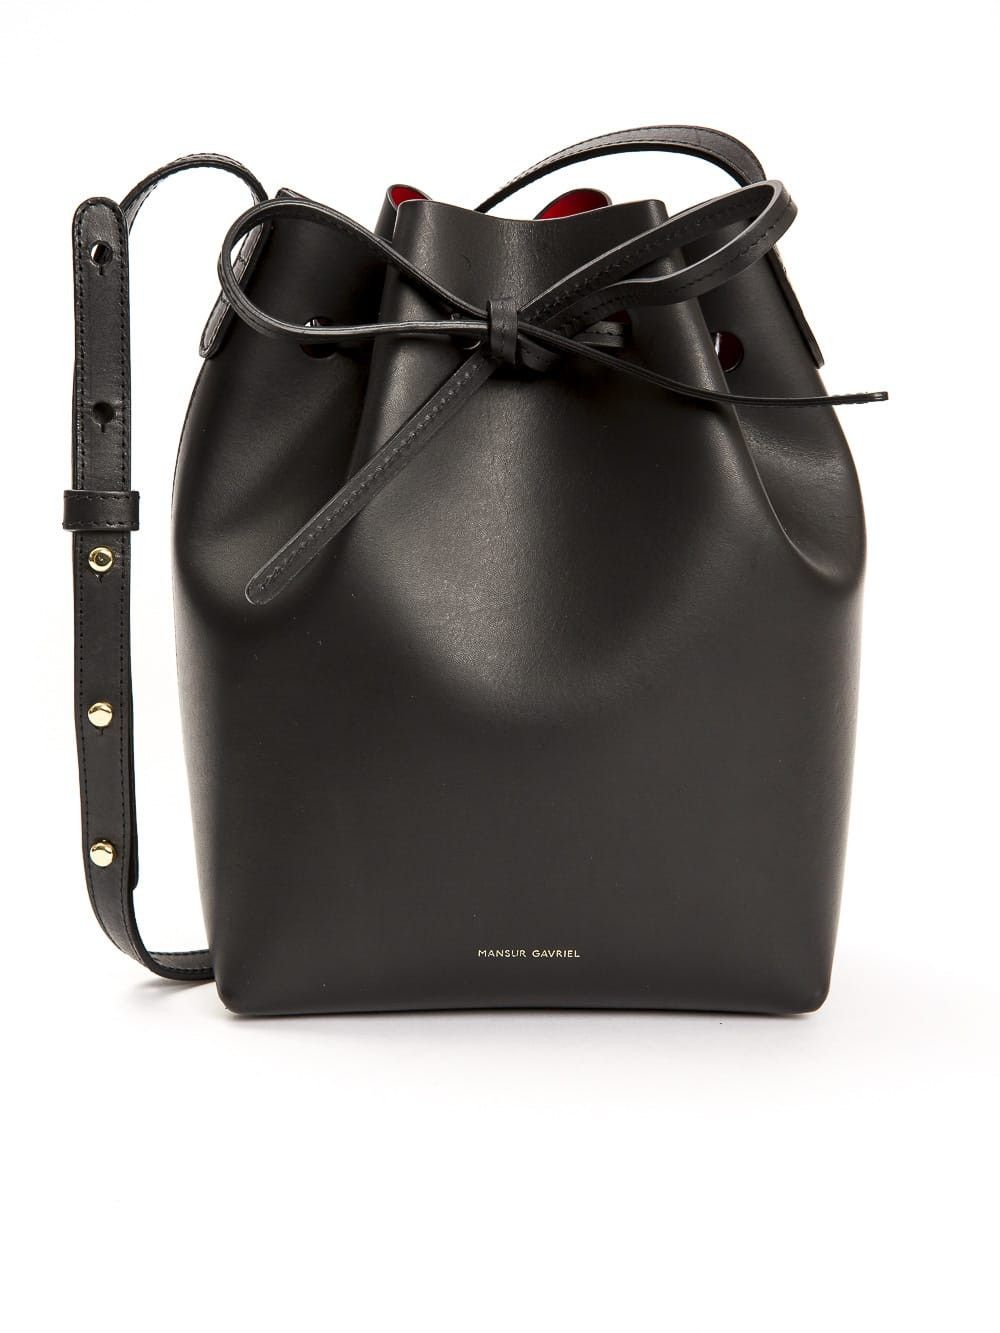 de7dfcbb9ee MANSUR GAVRIEL Mini Mini Saffiano Leather Bucket Bag in Black | rose ...